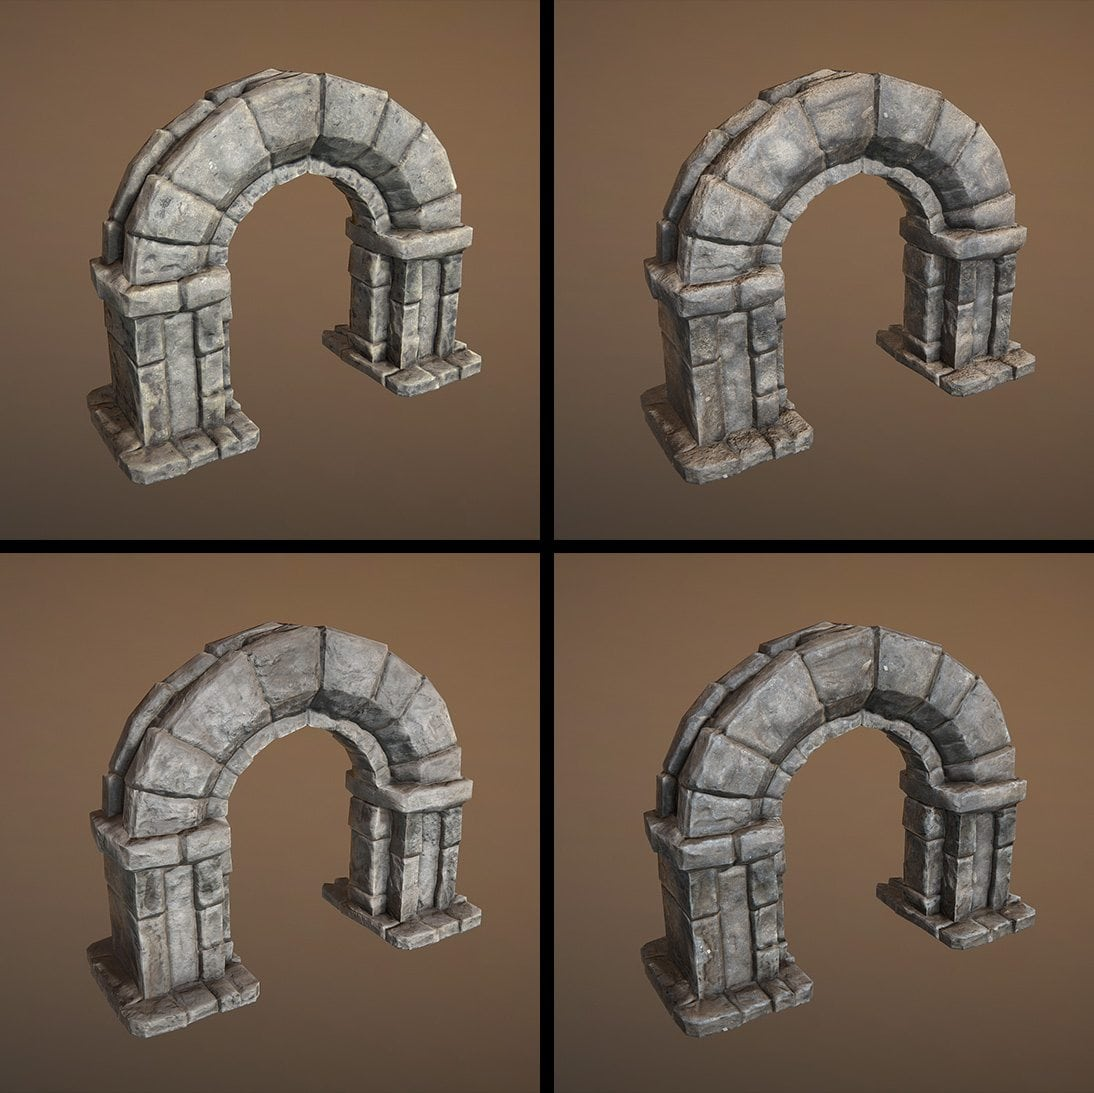 Image 10 - look development for the stone material